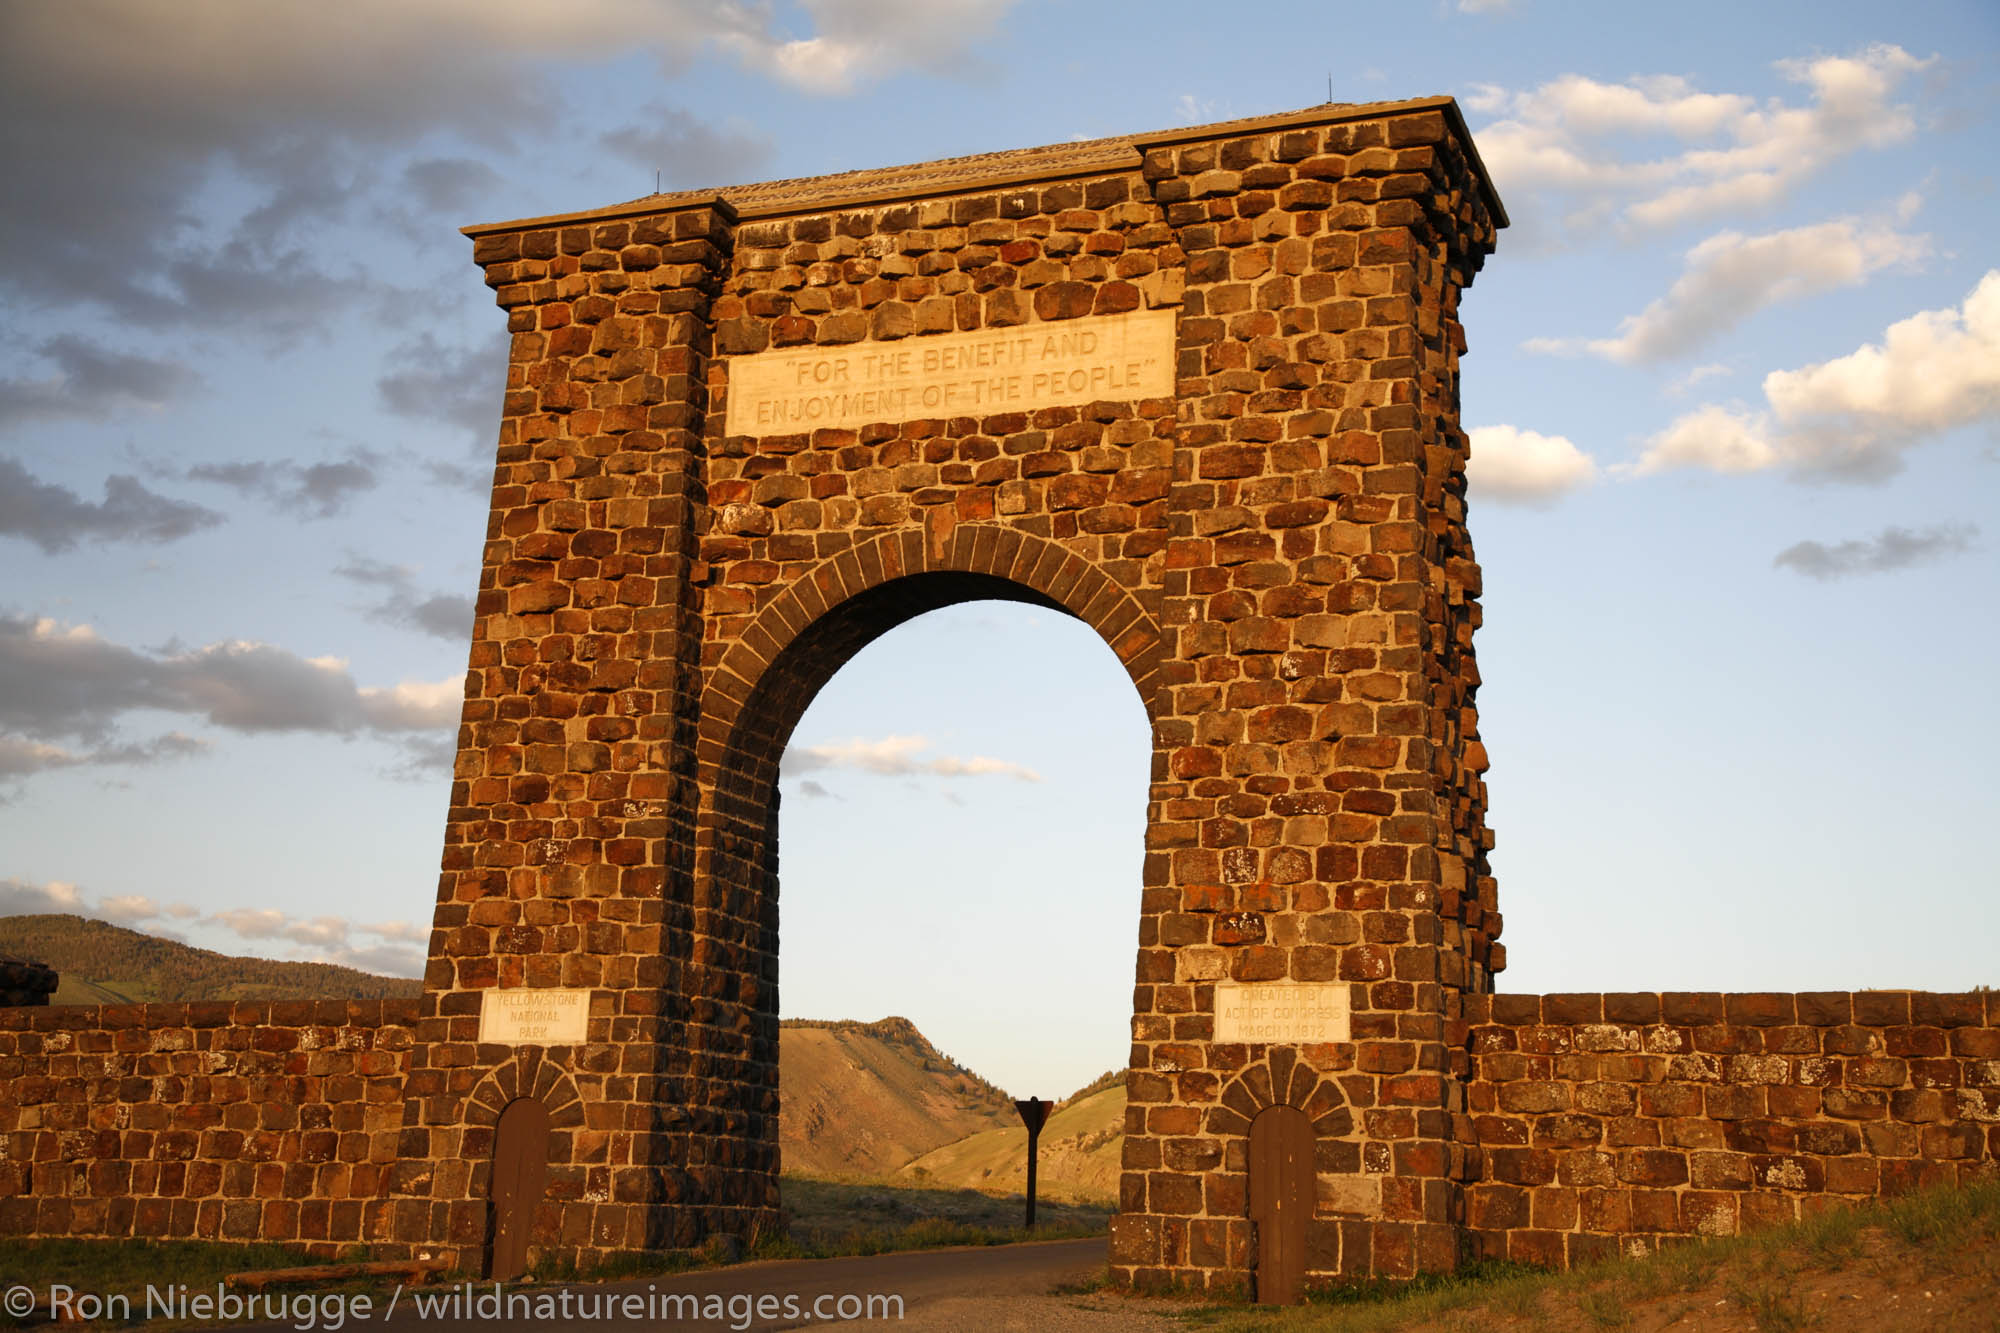 The arch over the North Entrance near Gardiner, Yellowstone National Park, Wyoming.